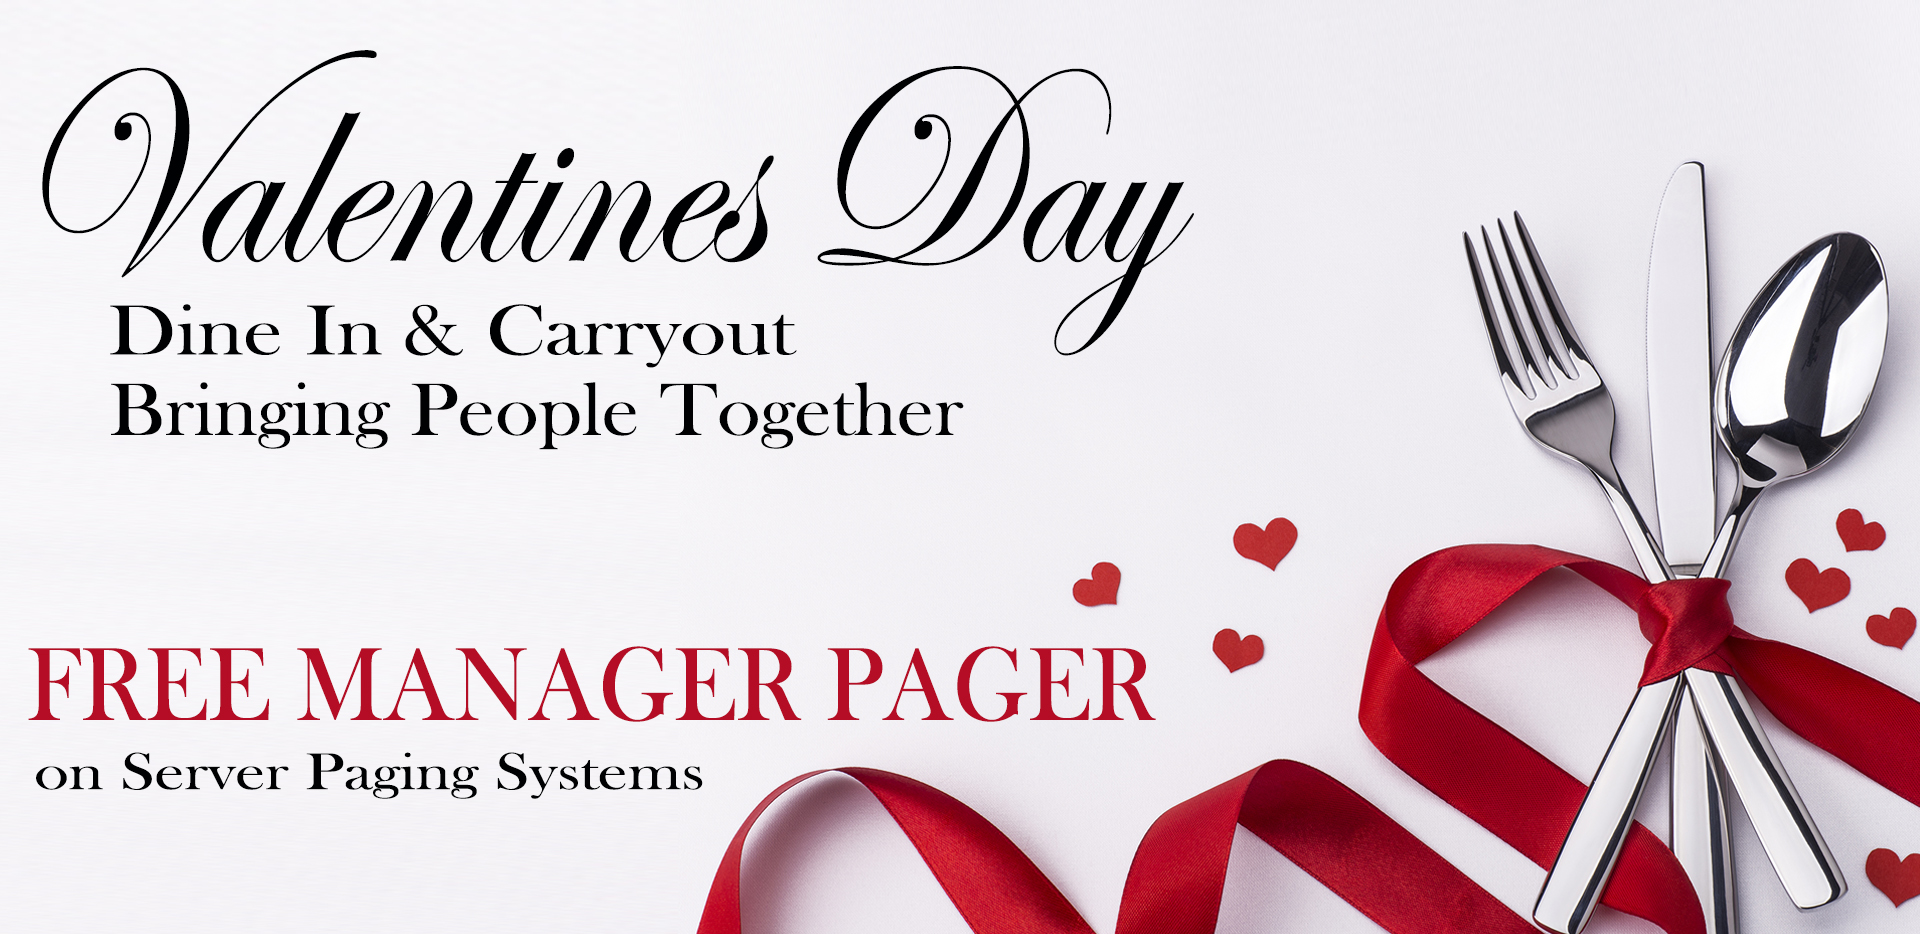 valentines-promo-2021-banner-server-pager-category-page.jpg